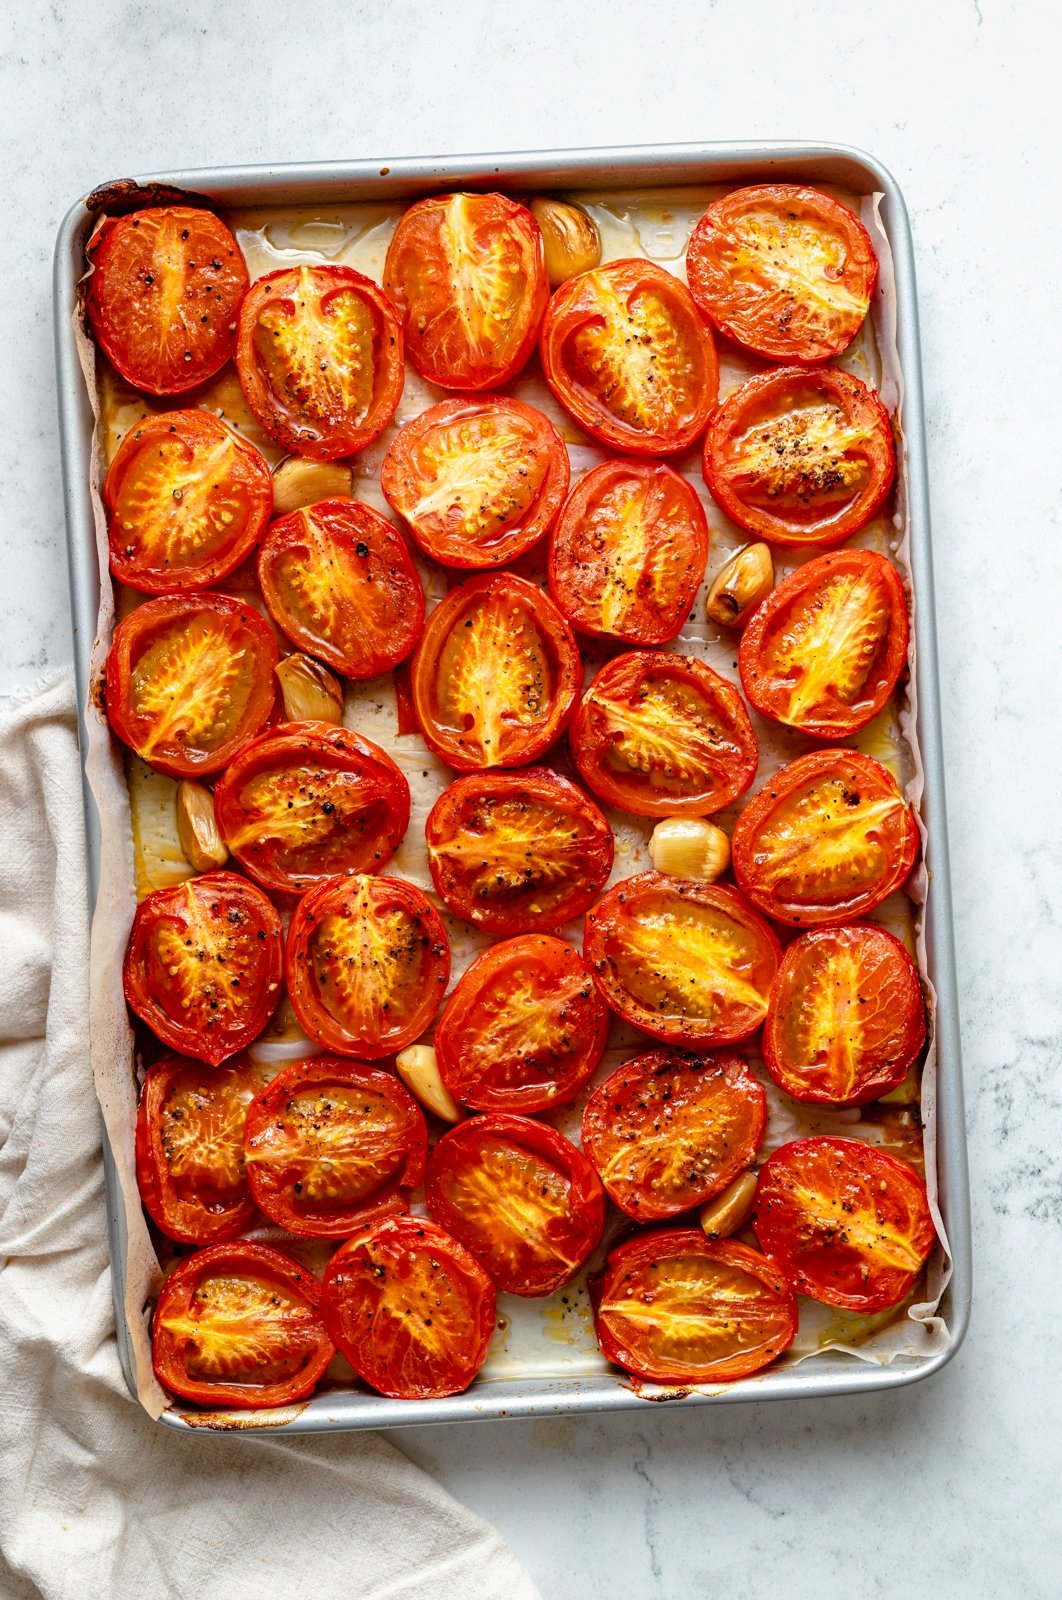 roasted tomatoes on a baking sheet to make homemade pasta sauce